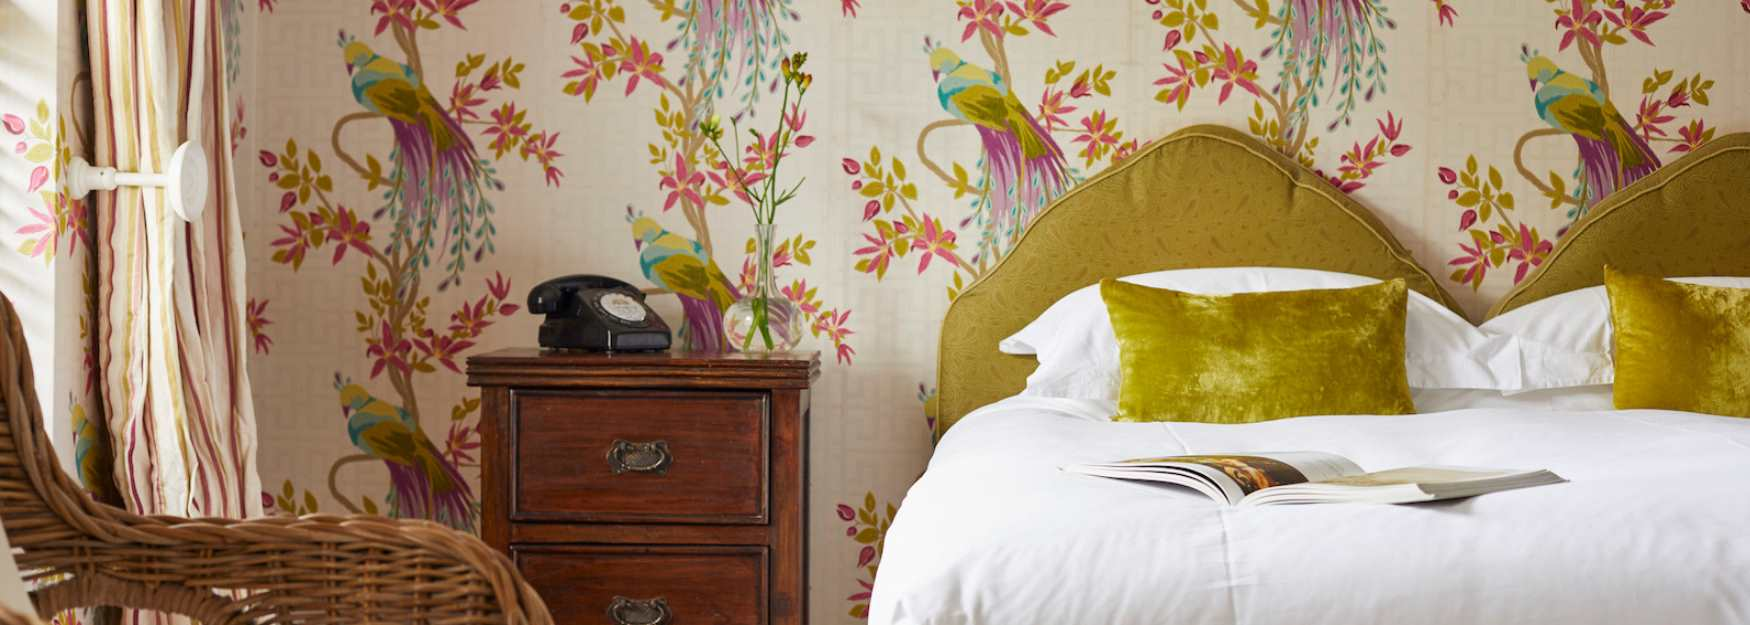 Comfortable and stylish rooms at the Ollerod